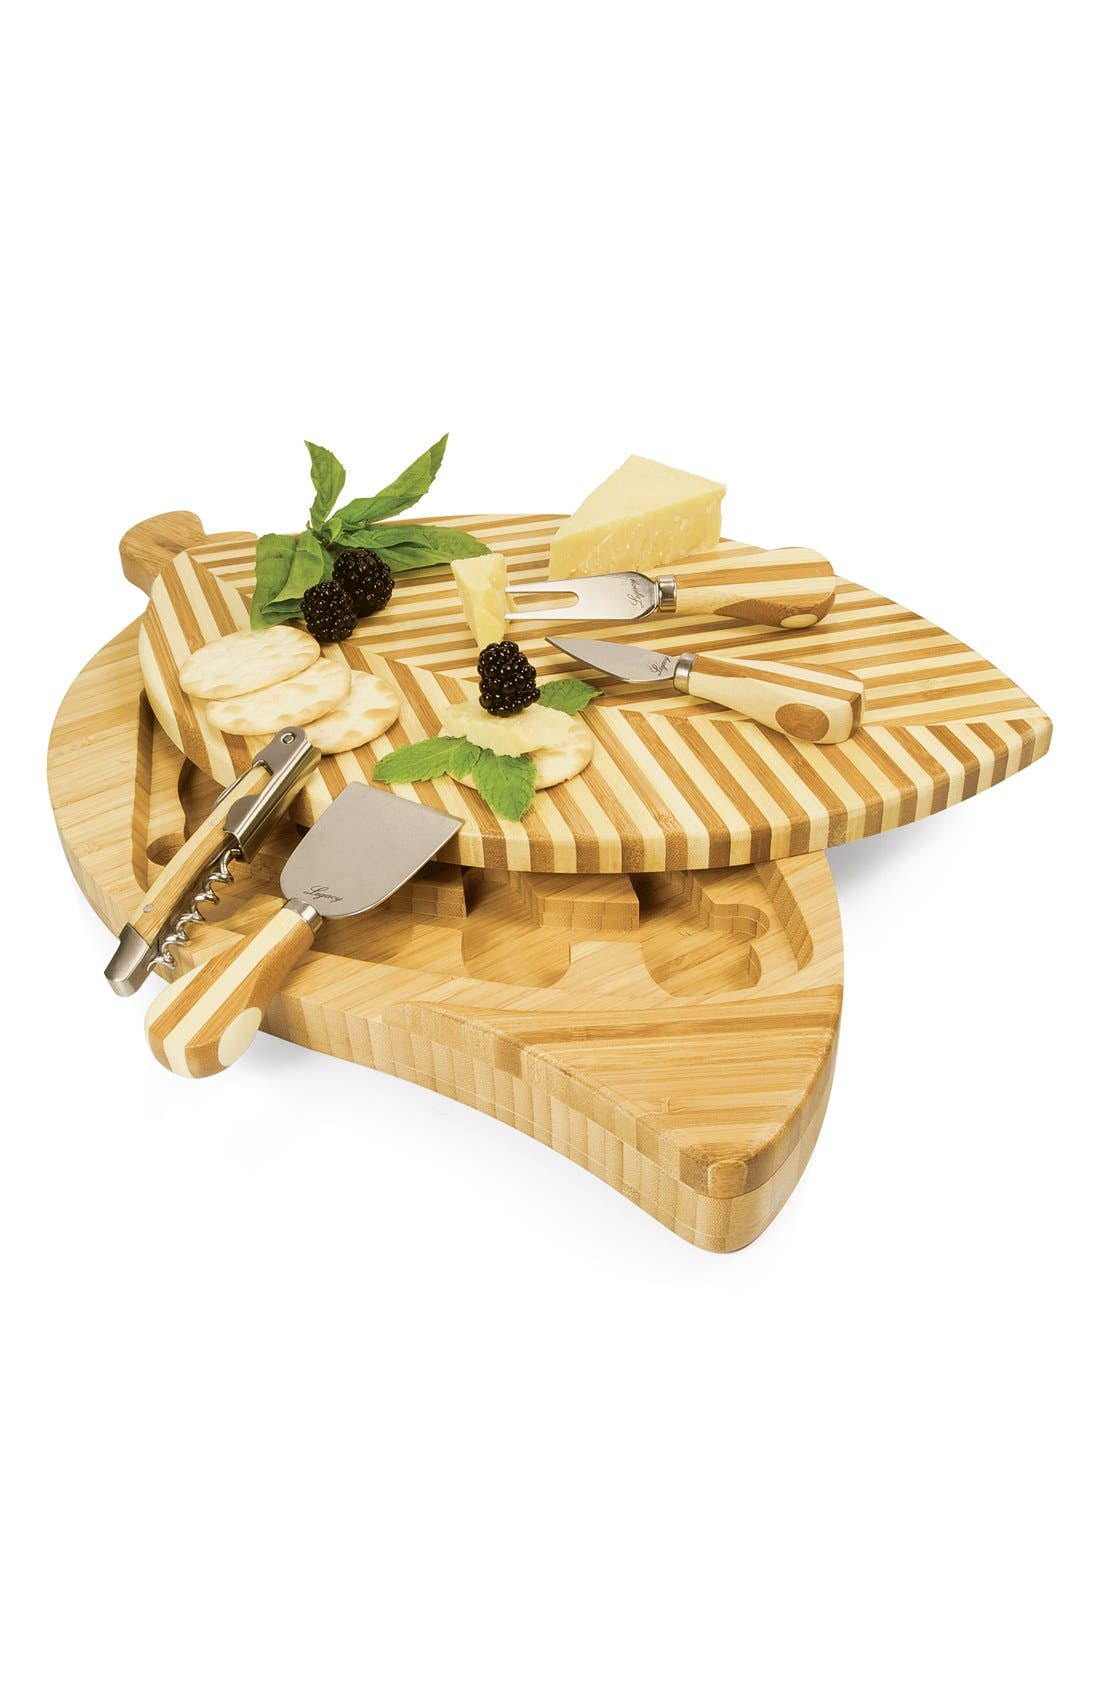 'Leaf' Cutting Board & Cheese Tools,                             Alternate thumbnail 4, color,